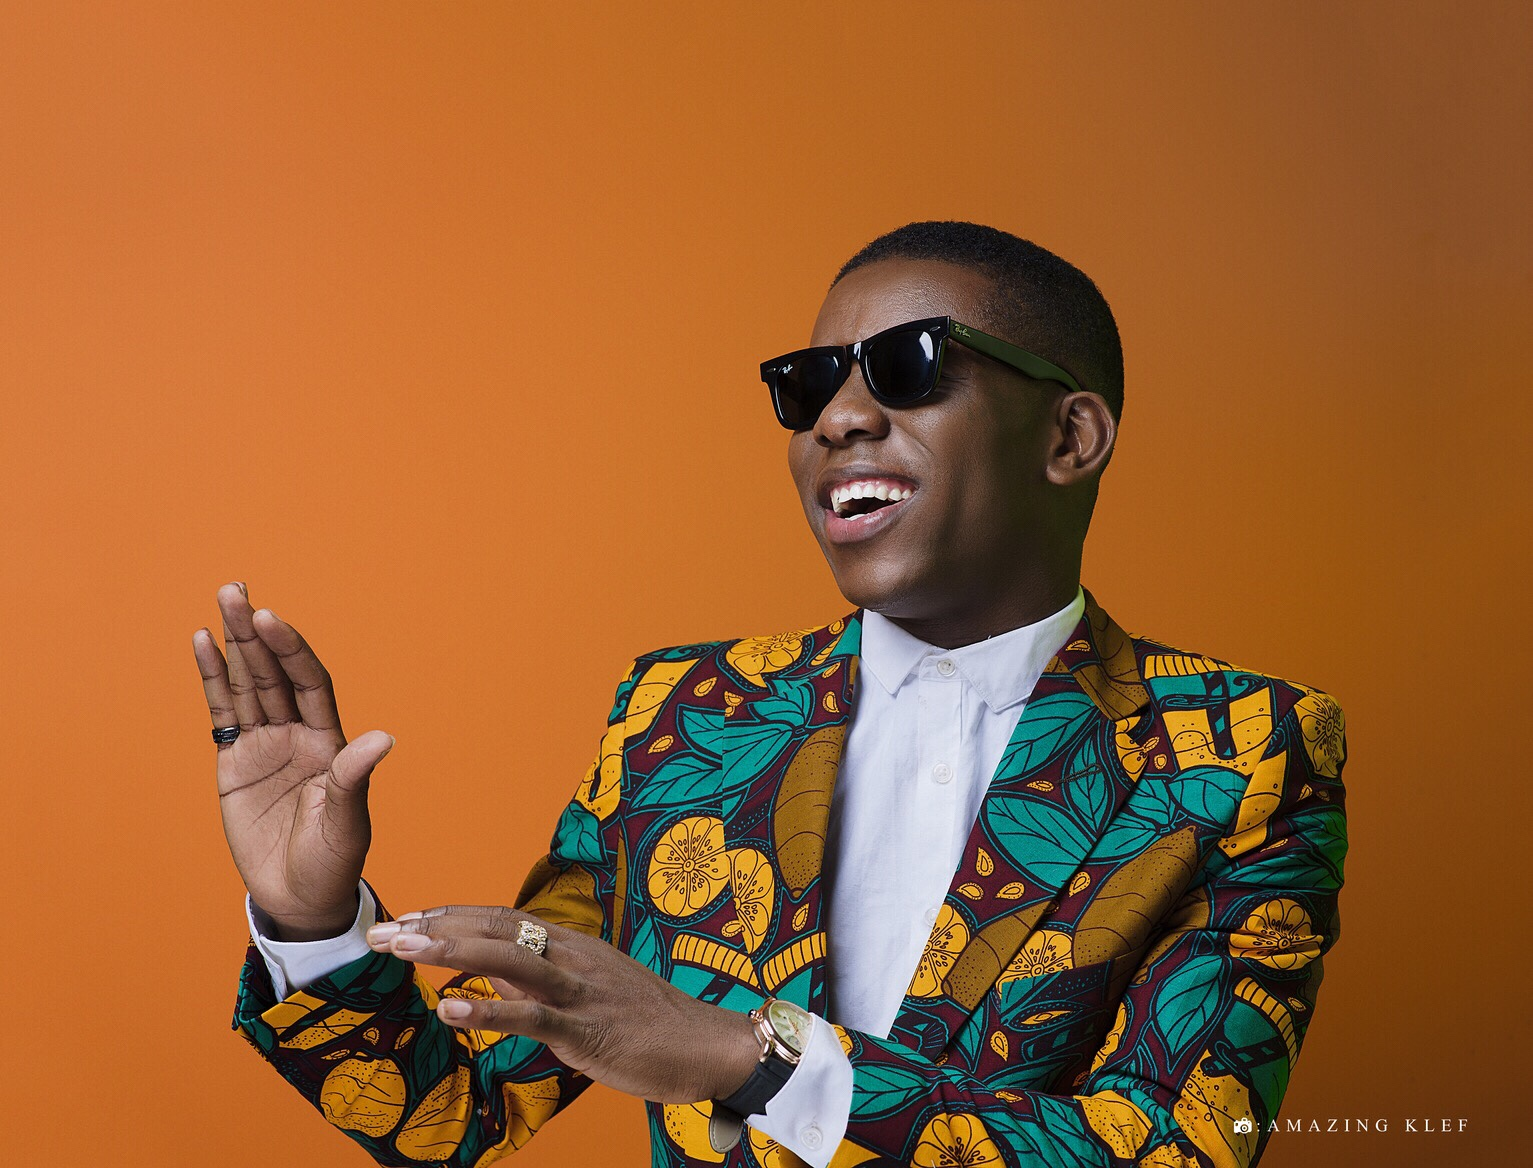 Small Doctor Arrested For Illegal Possession of Firearms